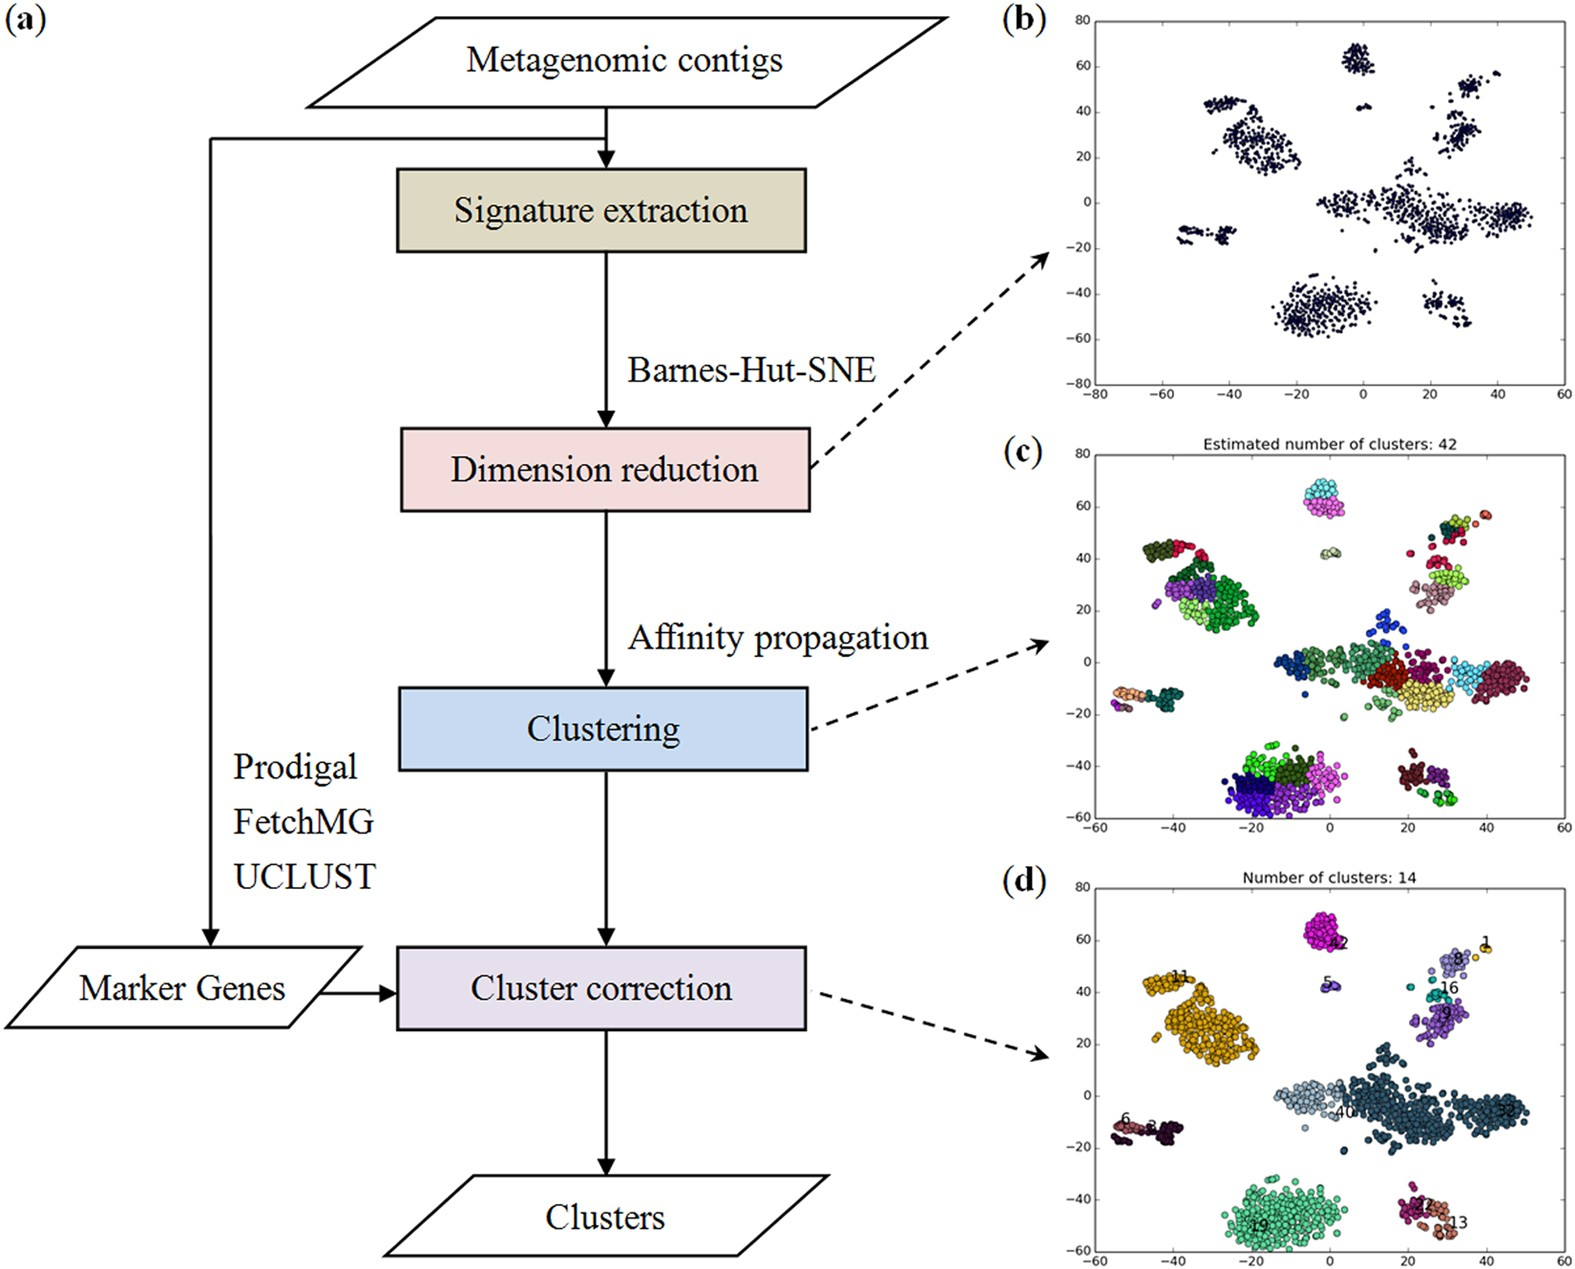 Accurate binning of metagenomic contigs via automated clustering ...